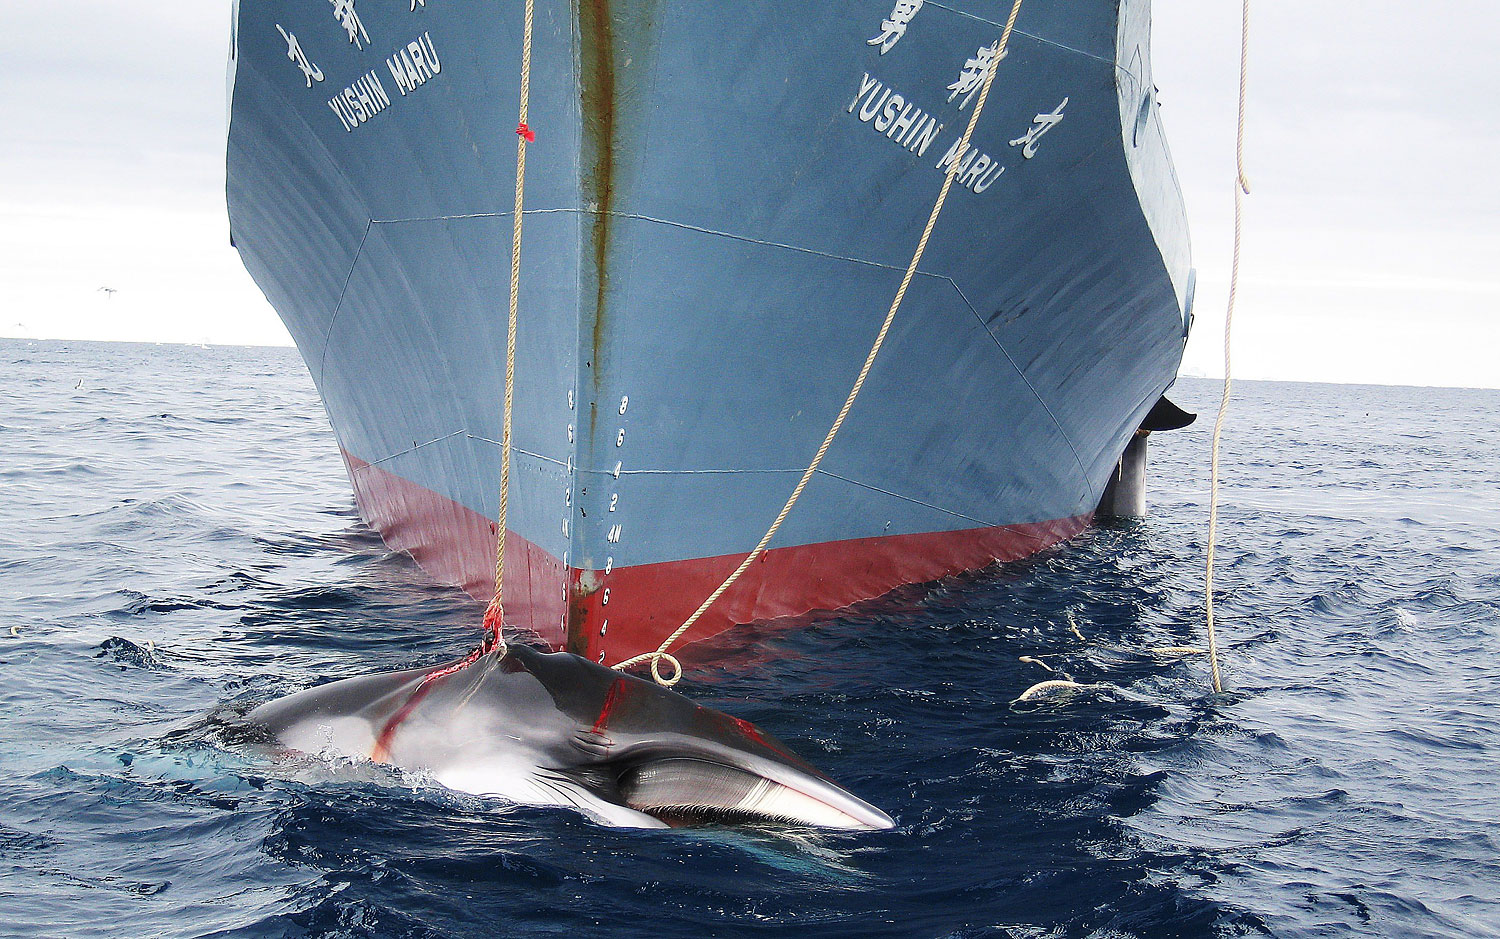 A photo released in 2008 shows a whale being dragged on board a Japanese ship after being harpooned in Antarctic waters